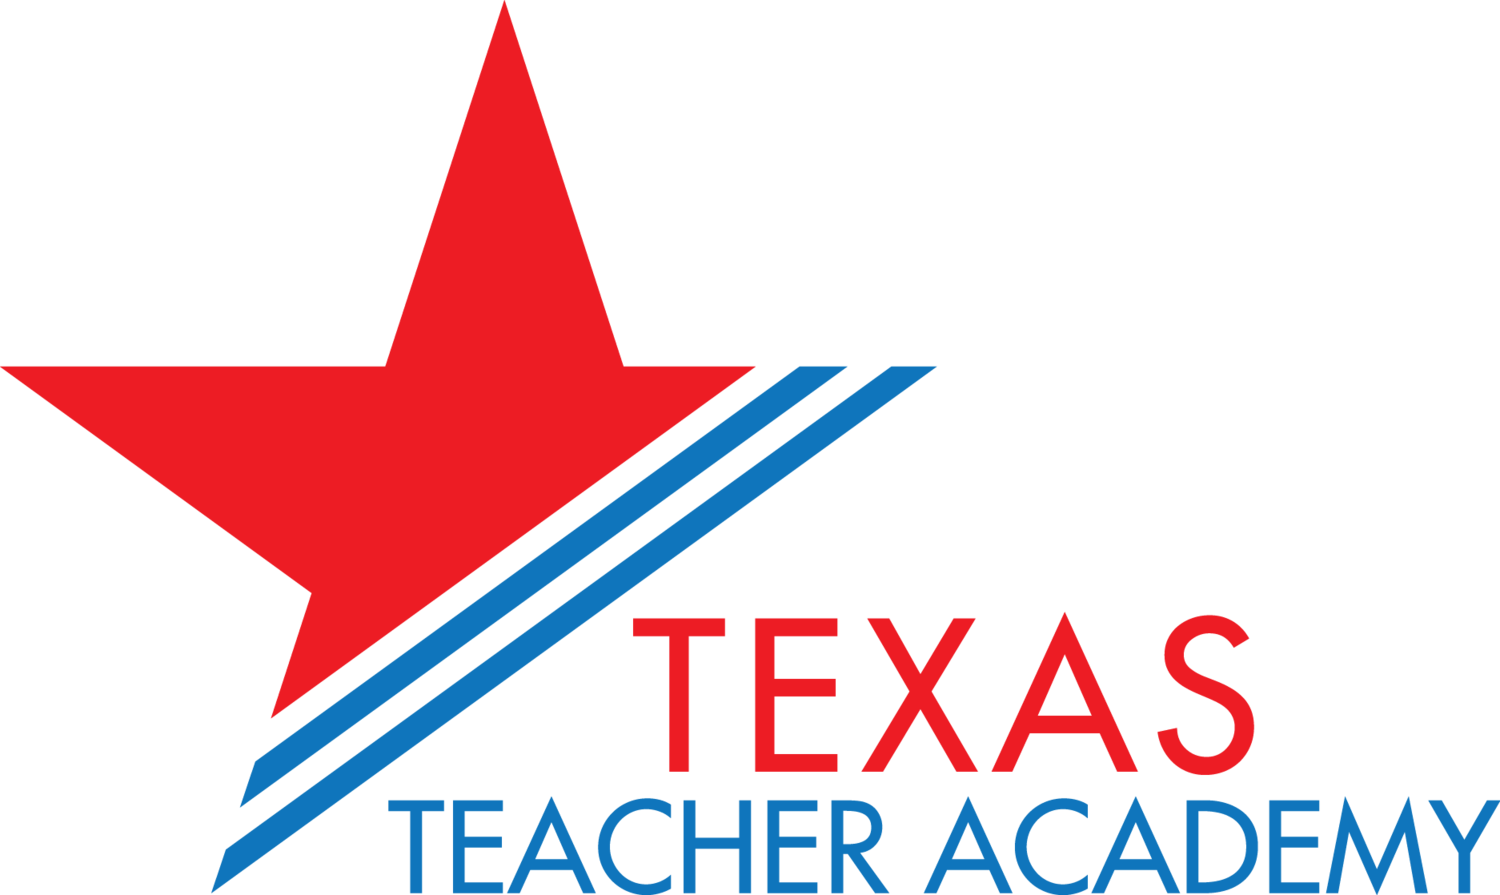 Texas Teacher Academy